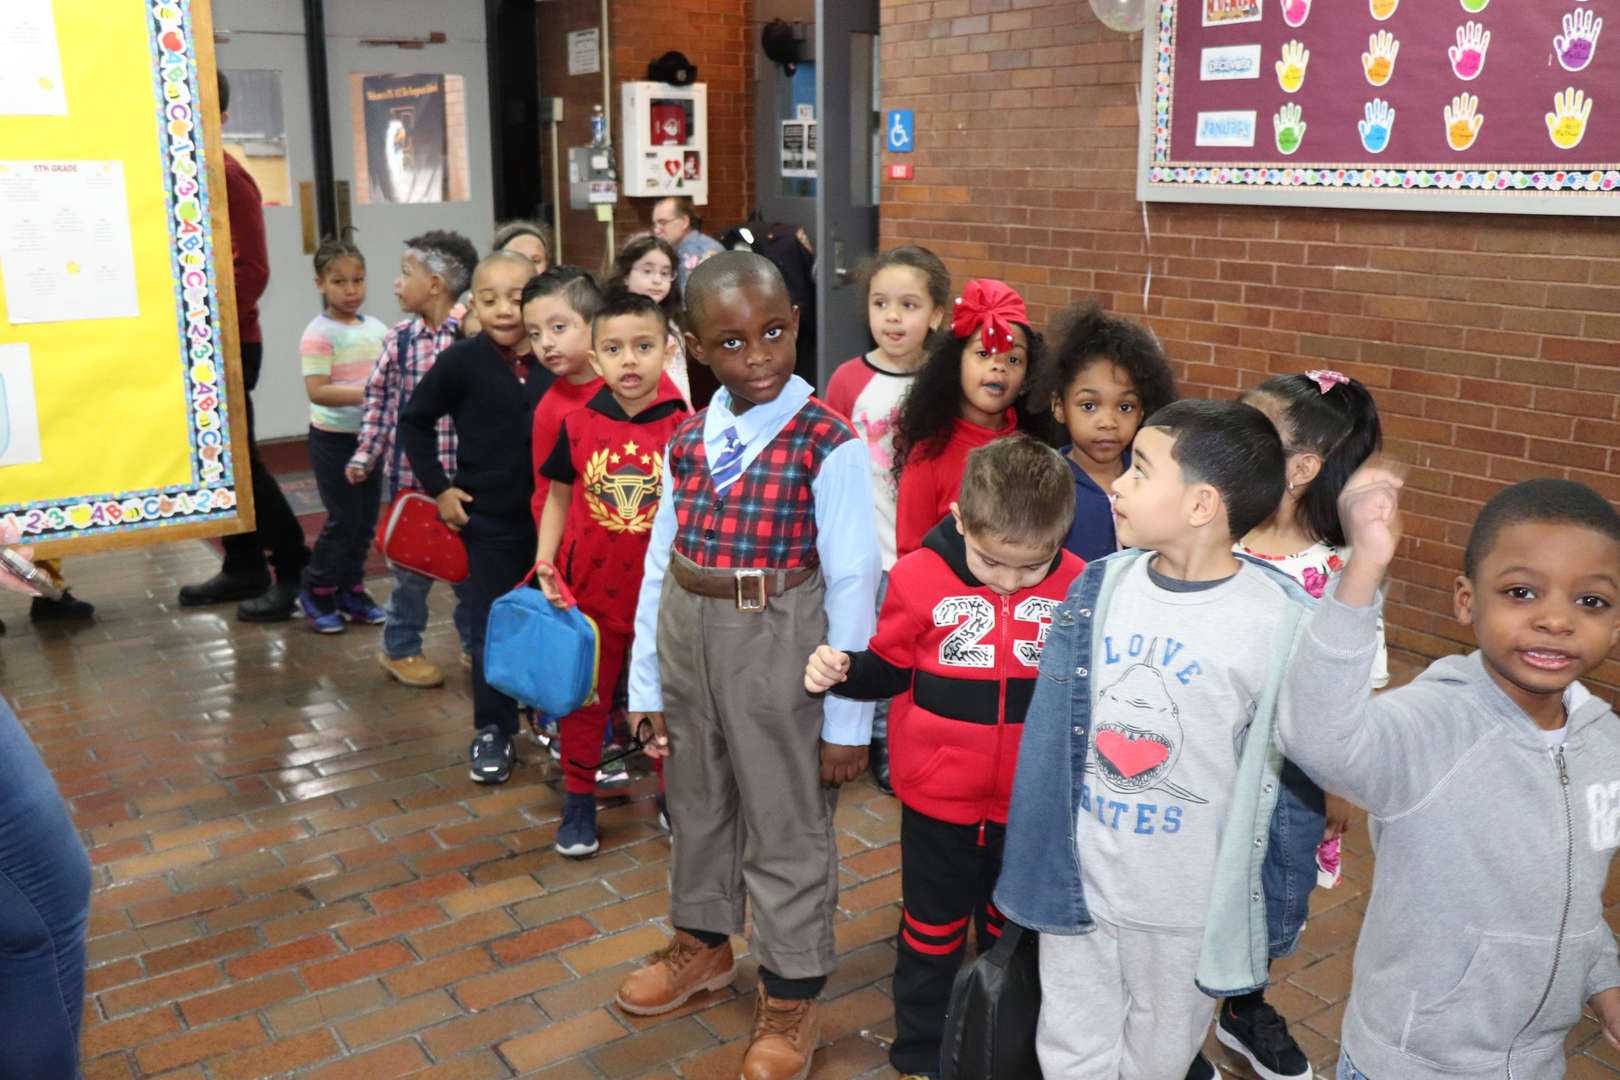 Students waiting to go to lunch while celebrating 100 day and Valentine's Day.